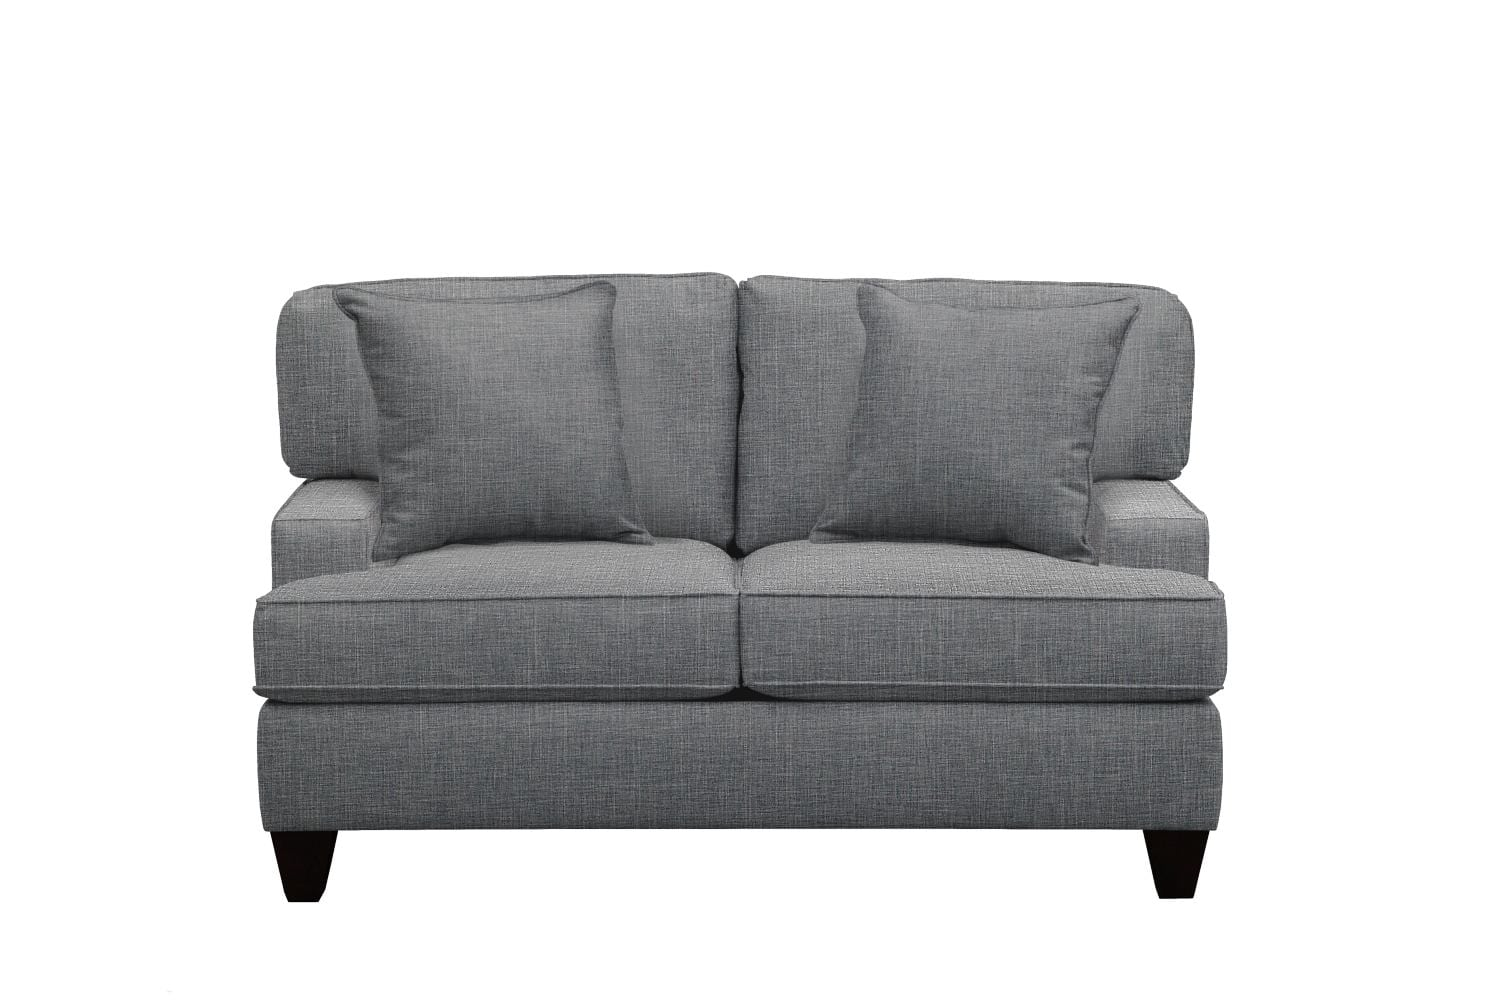 "Living Room Furniture - Conner Track Arm Sofa 63"" Milford II Charcoal w/ Milford II Charcoal  Pillow"